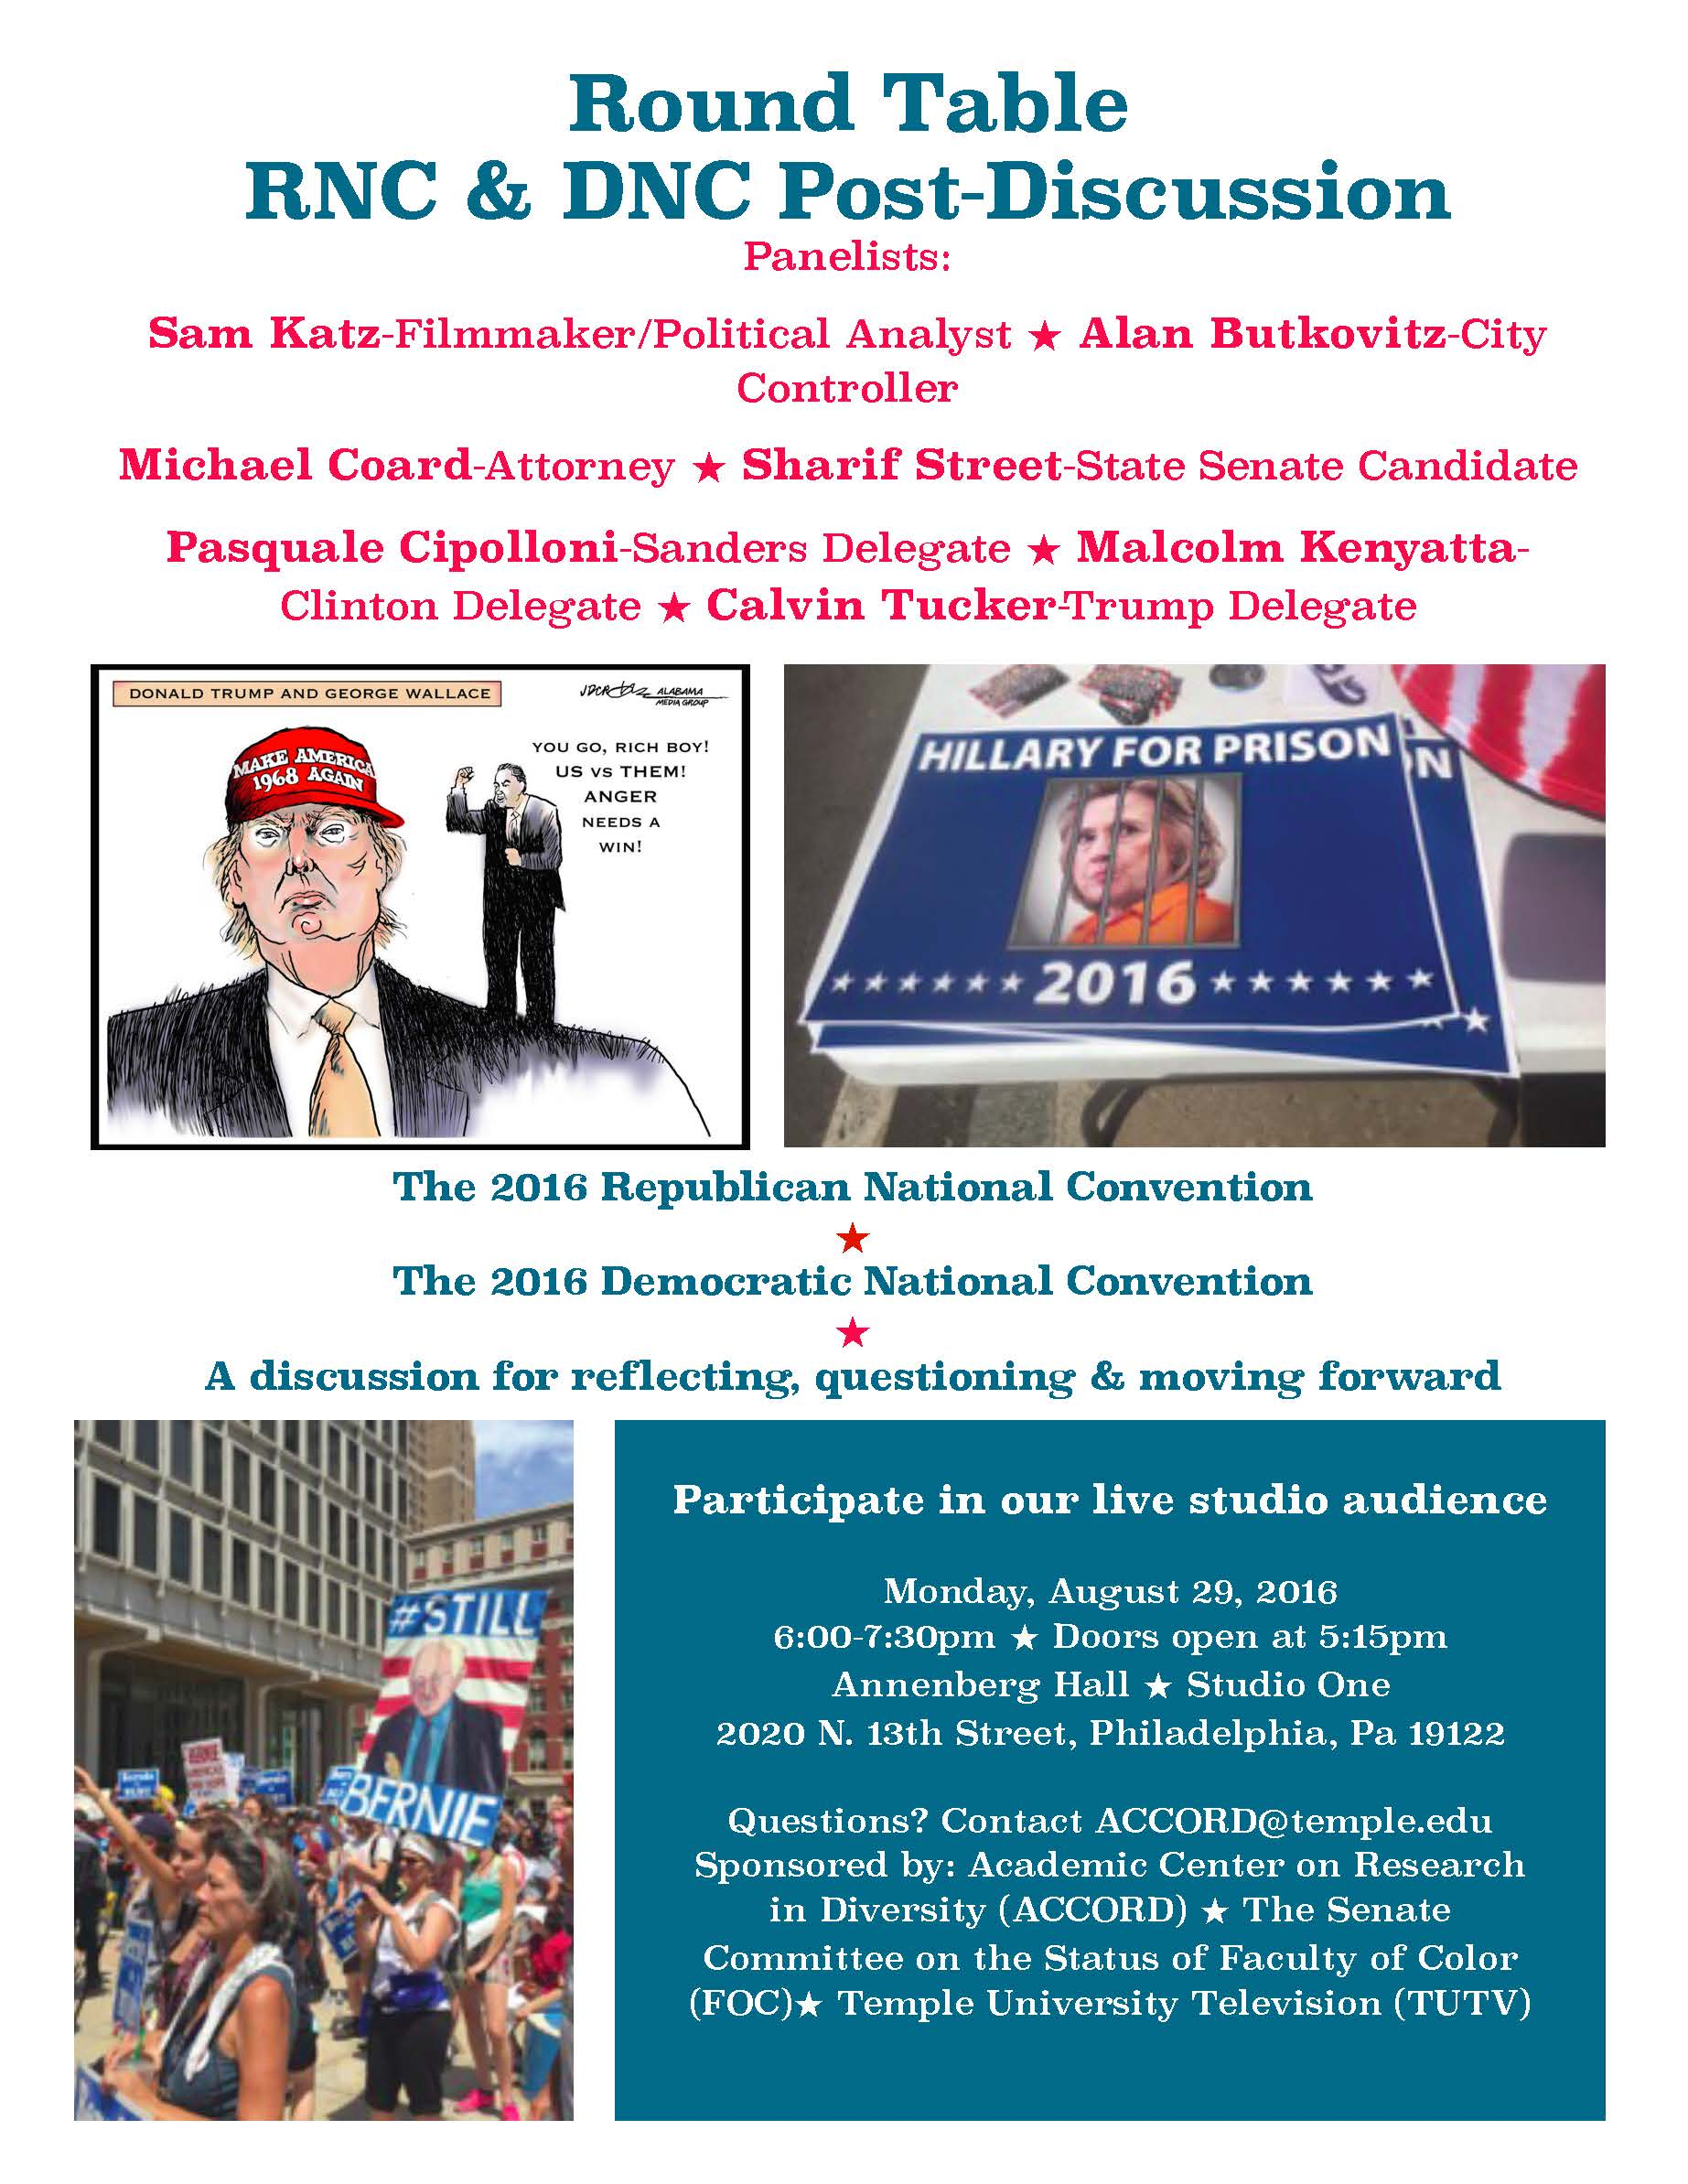 Round table discussion flyer - Round Table Rnc Dnc Post Discussion Flyer